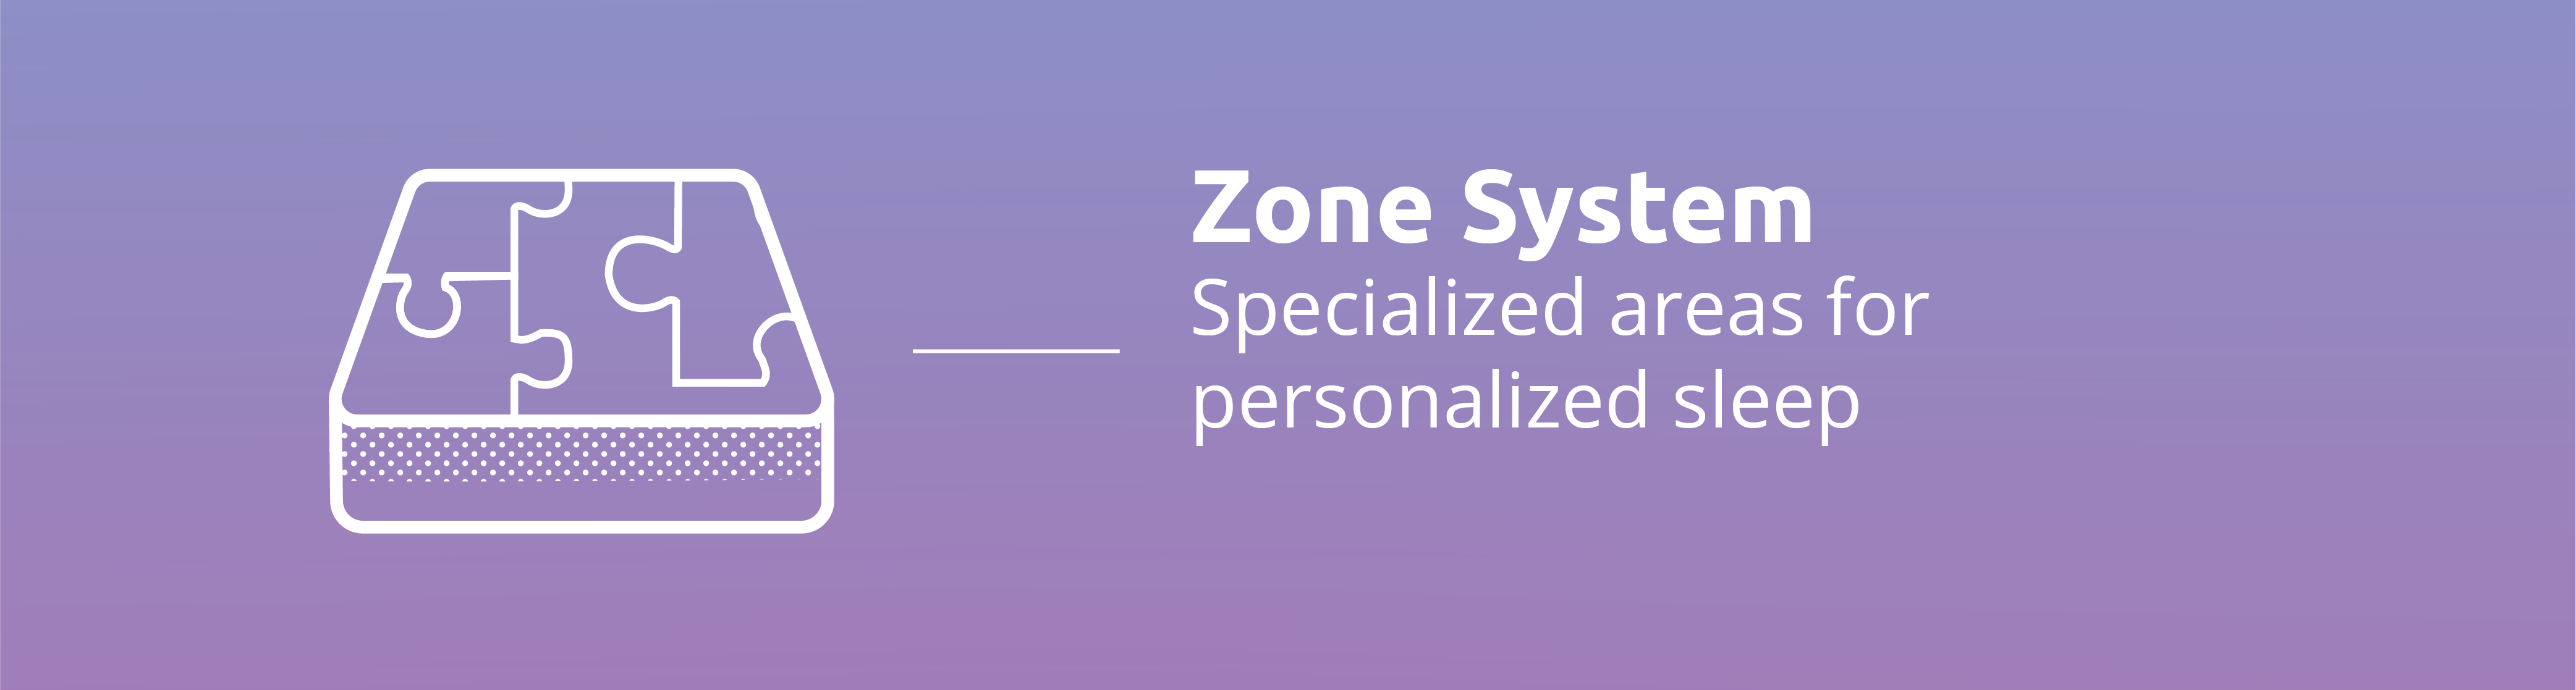 Zoning System Infographic